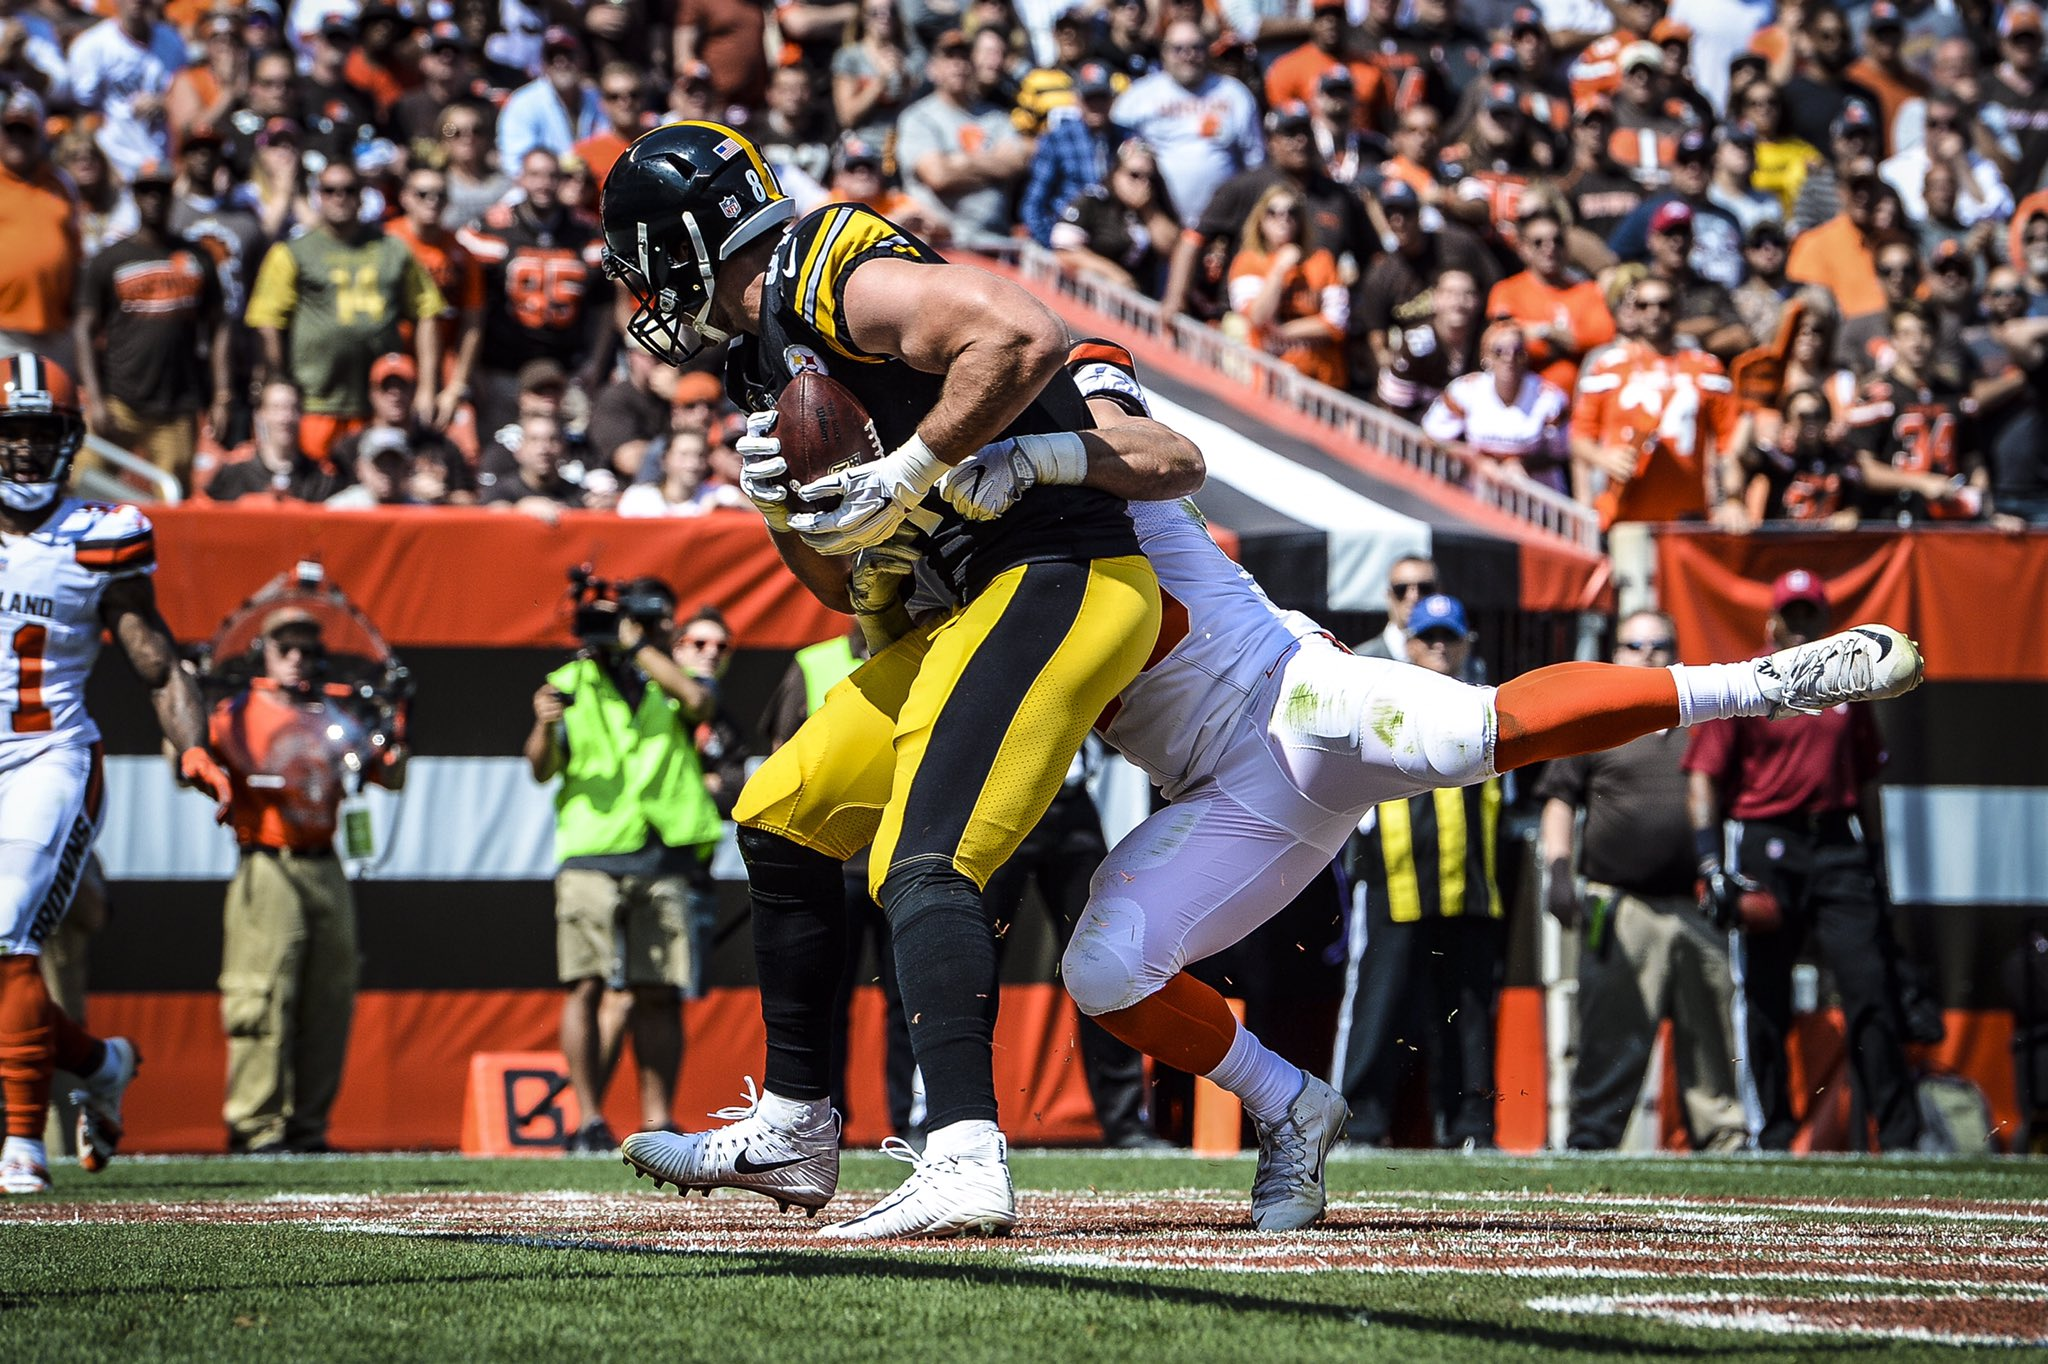 Jesse James' first career multi-TD game is the first by a #Steelers TE since 2012 (Heath Miller, 9/23). https://t.co/1CrkSFd96N